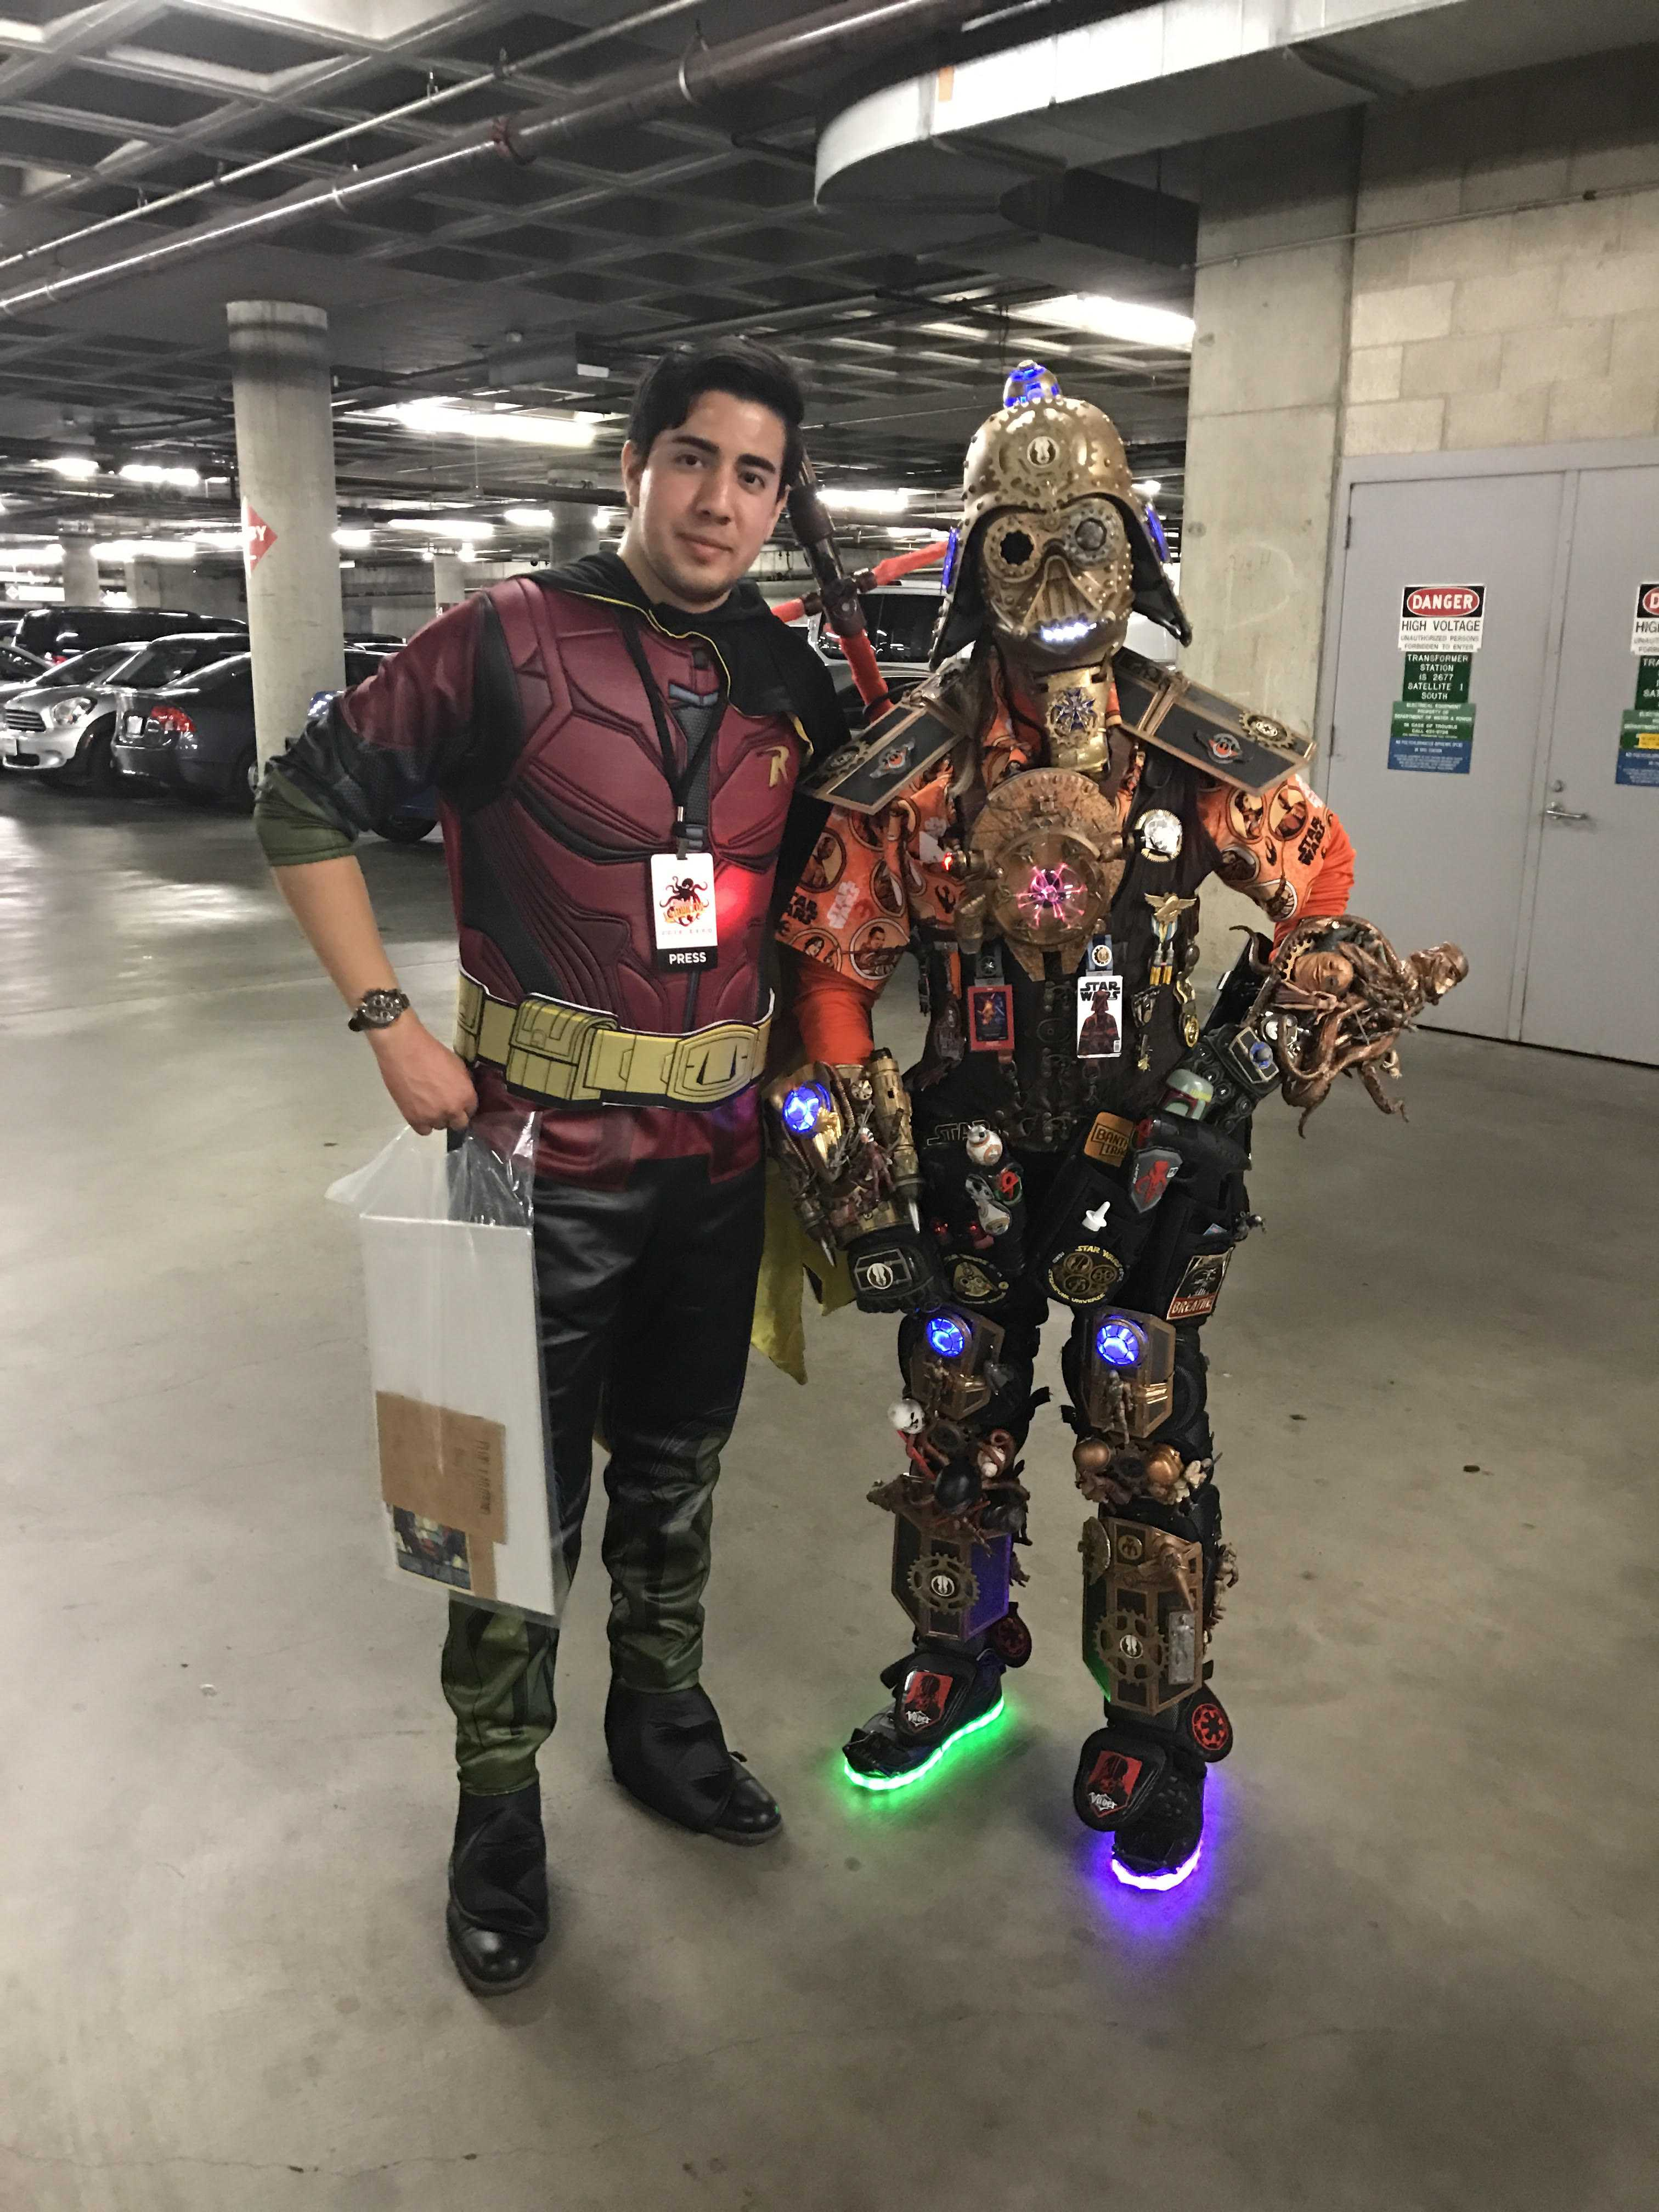 Two fans dressed up in cosplay for LA comic con